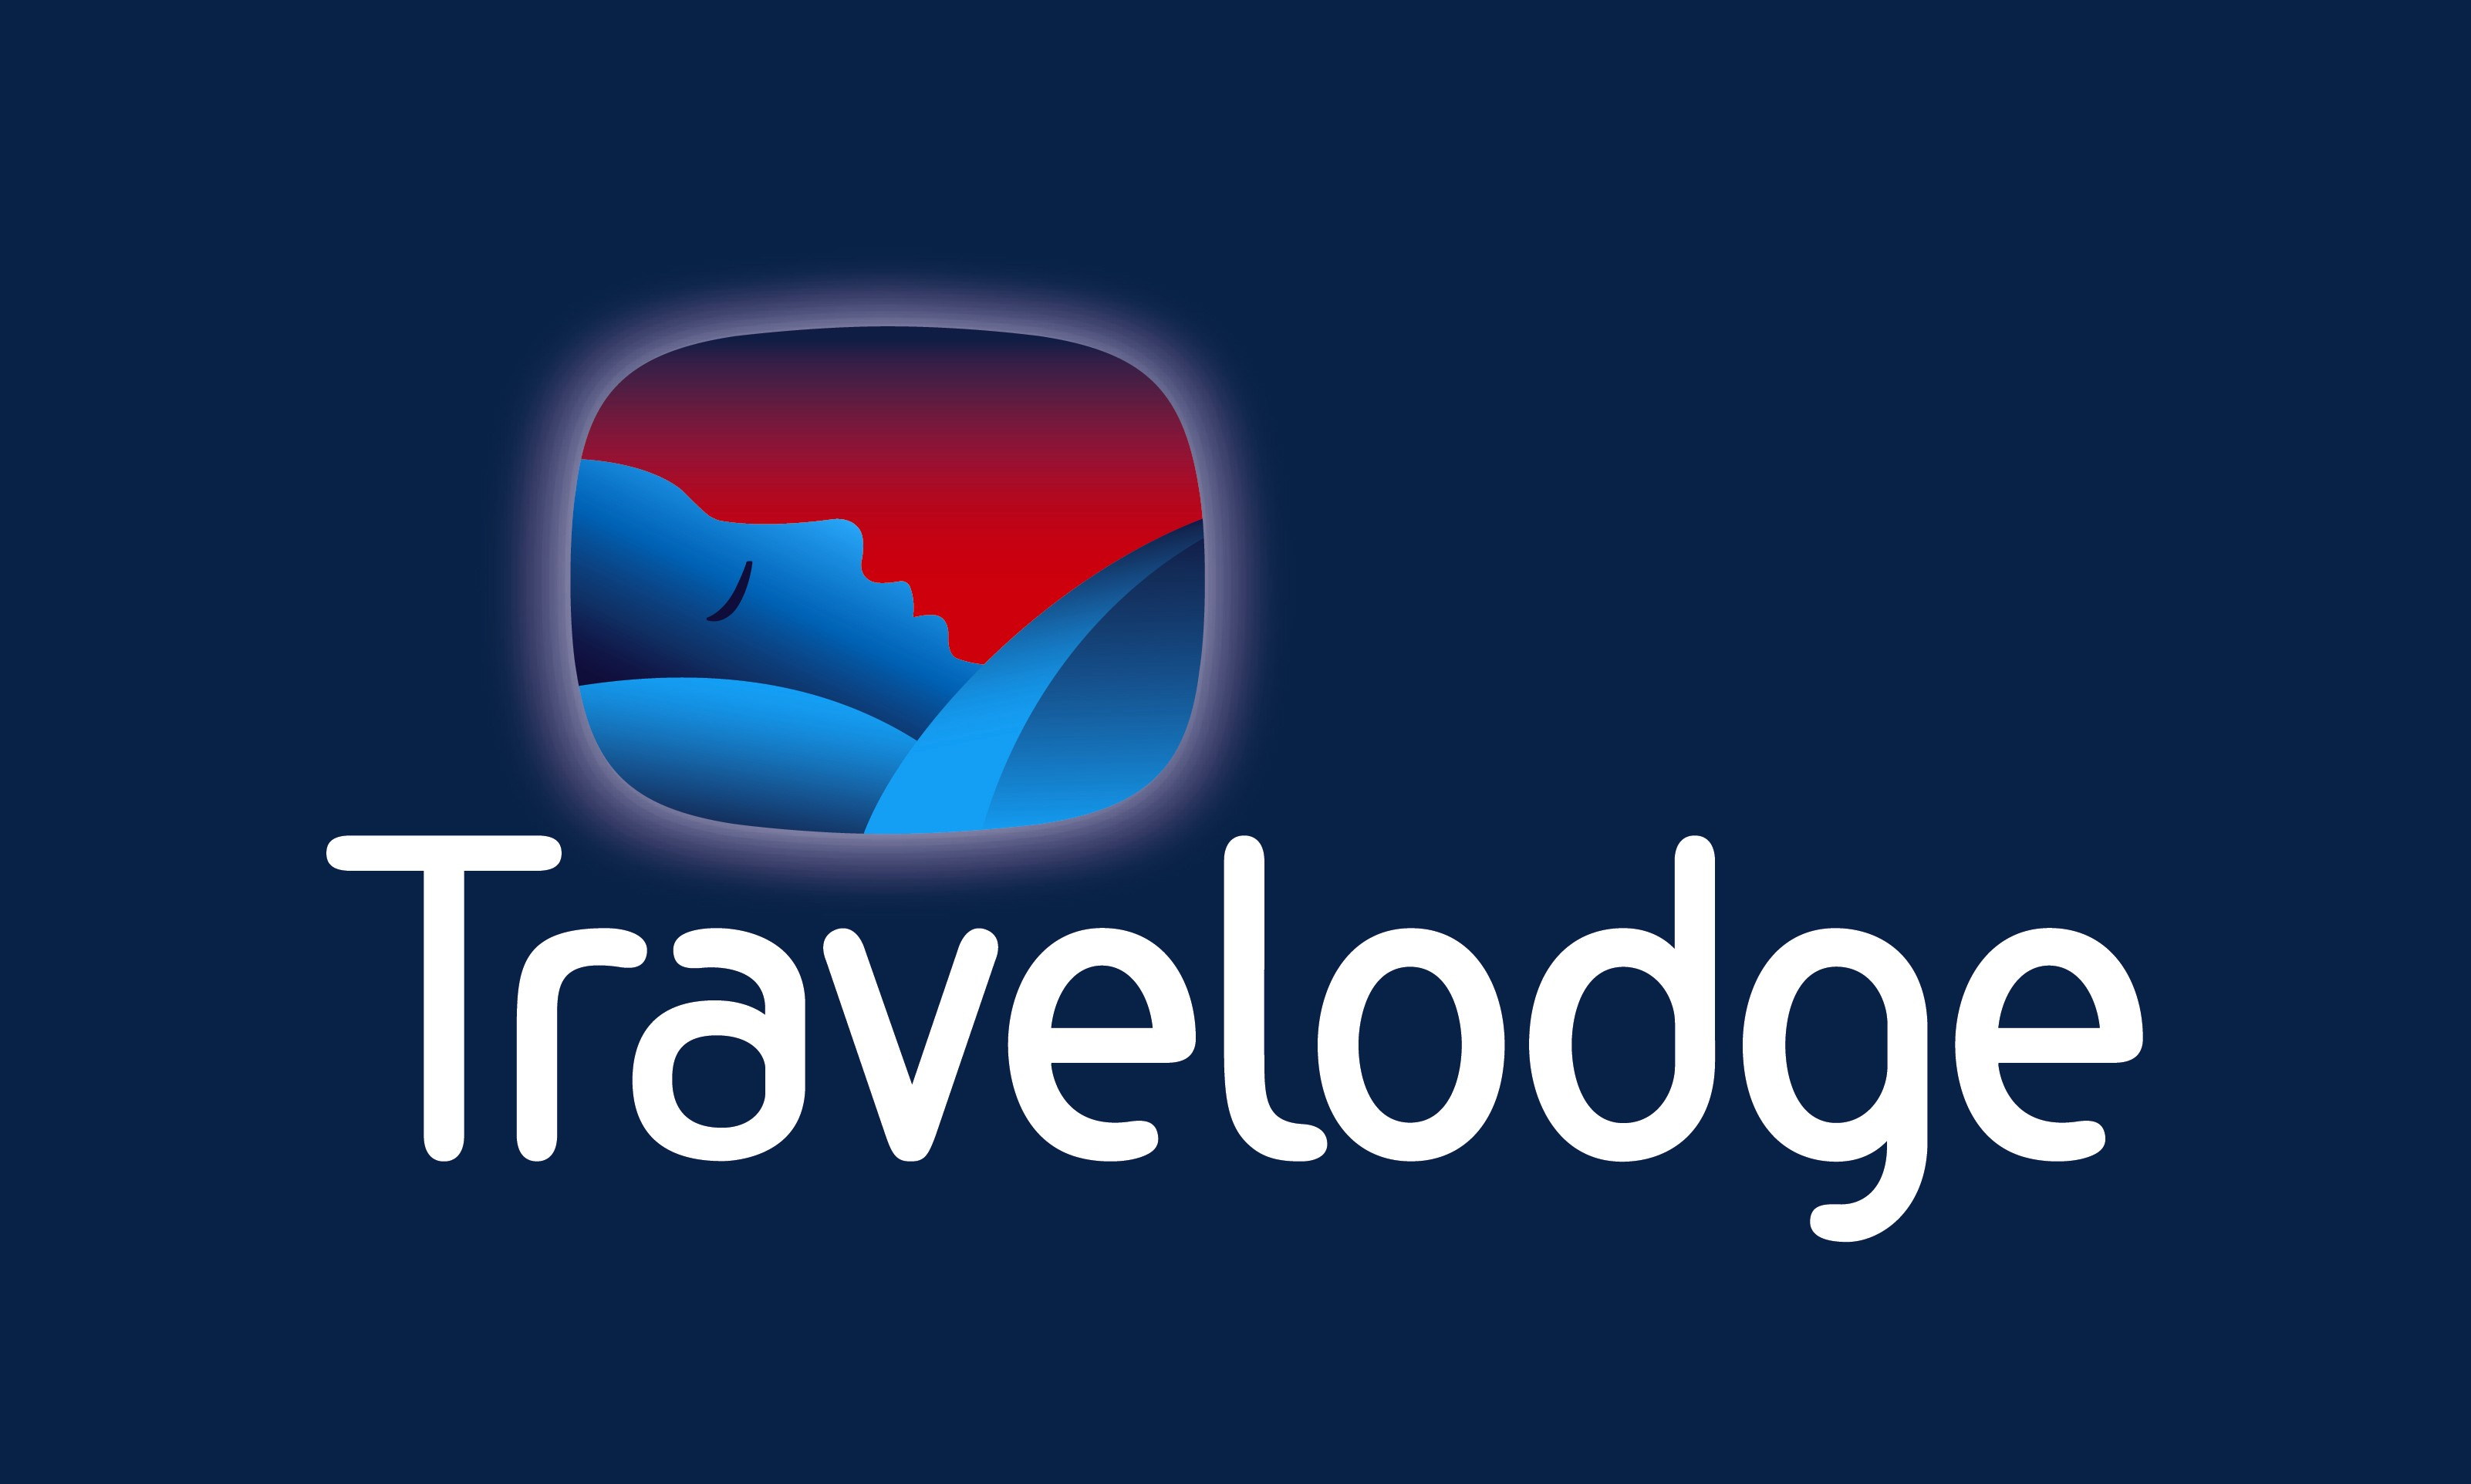 London Hotels: Budget Chain Travelodge Plans to open 184 New Hotels in London